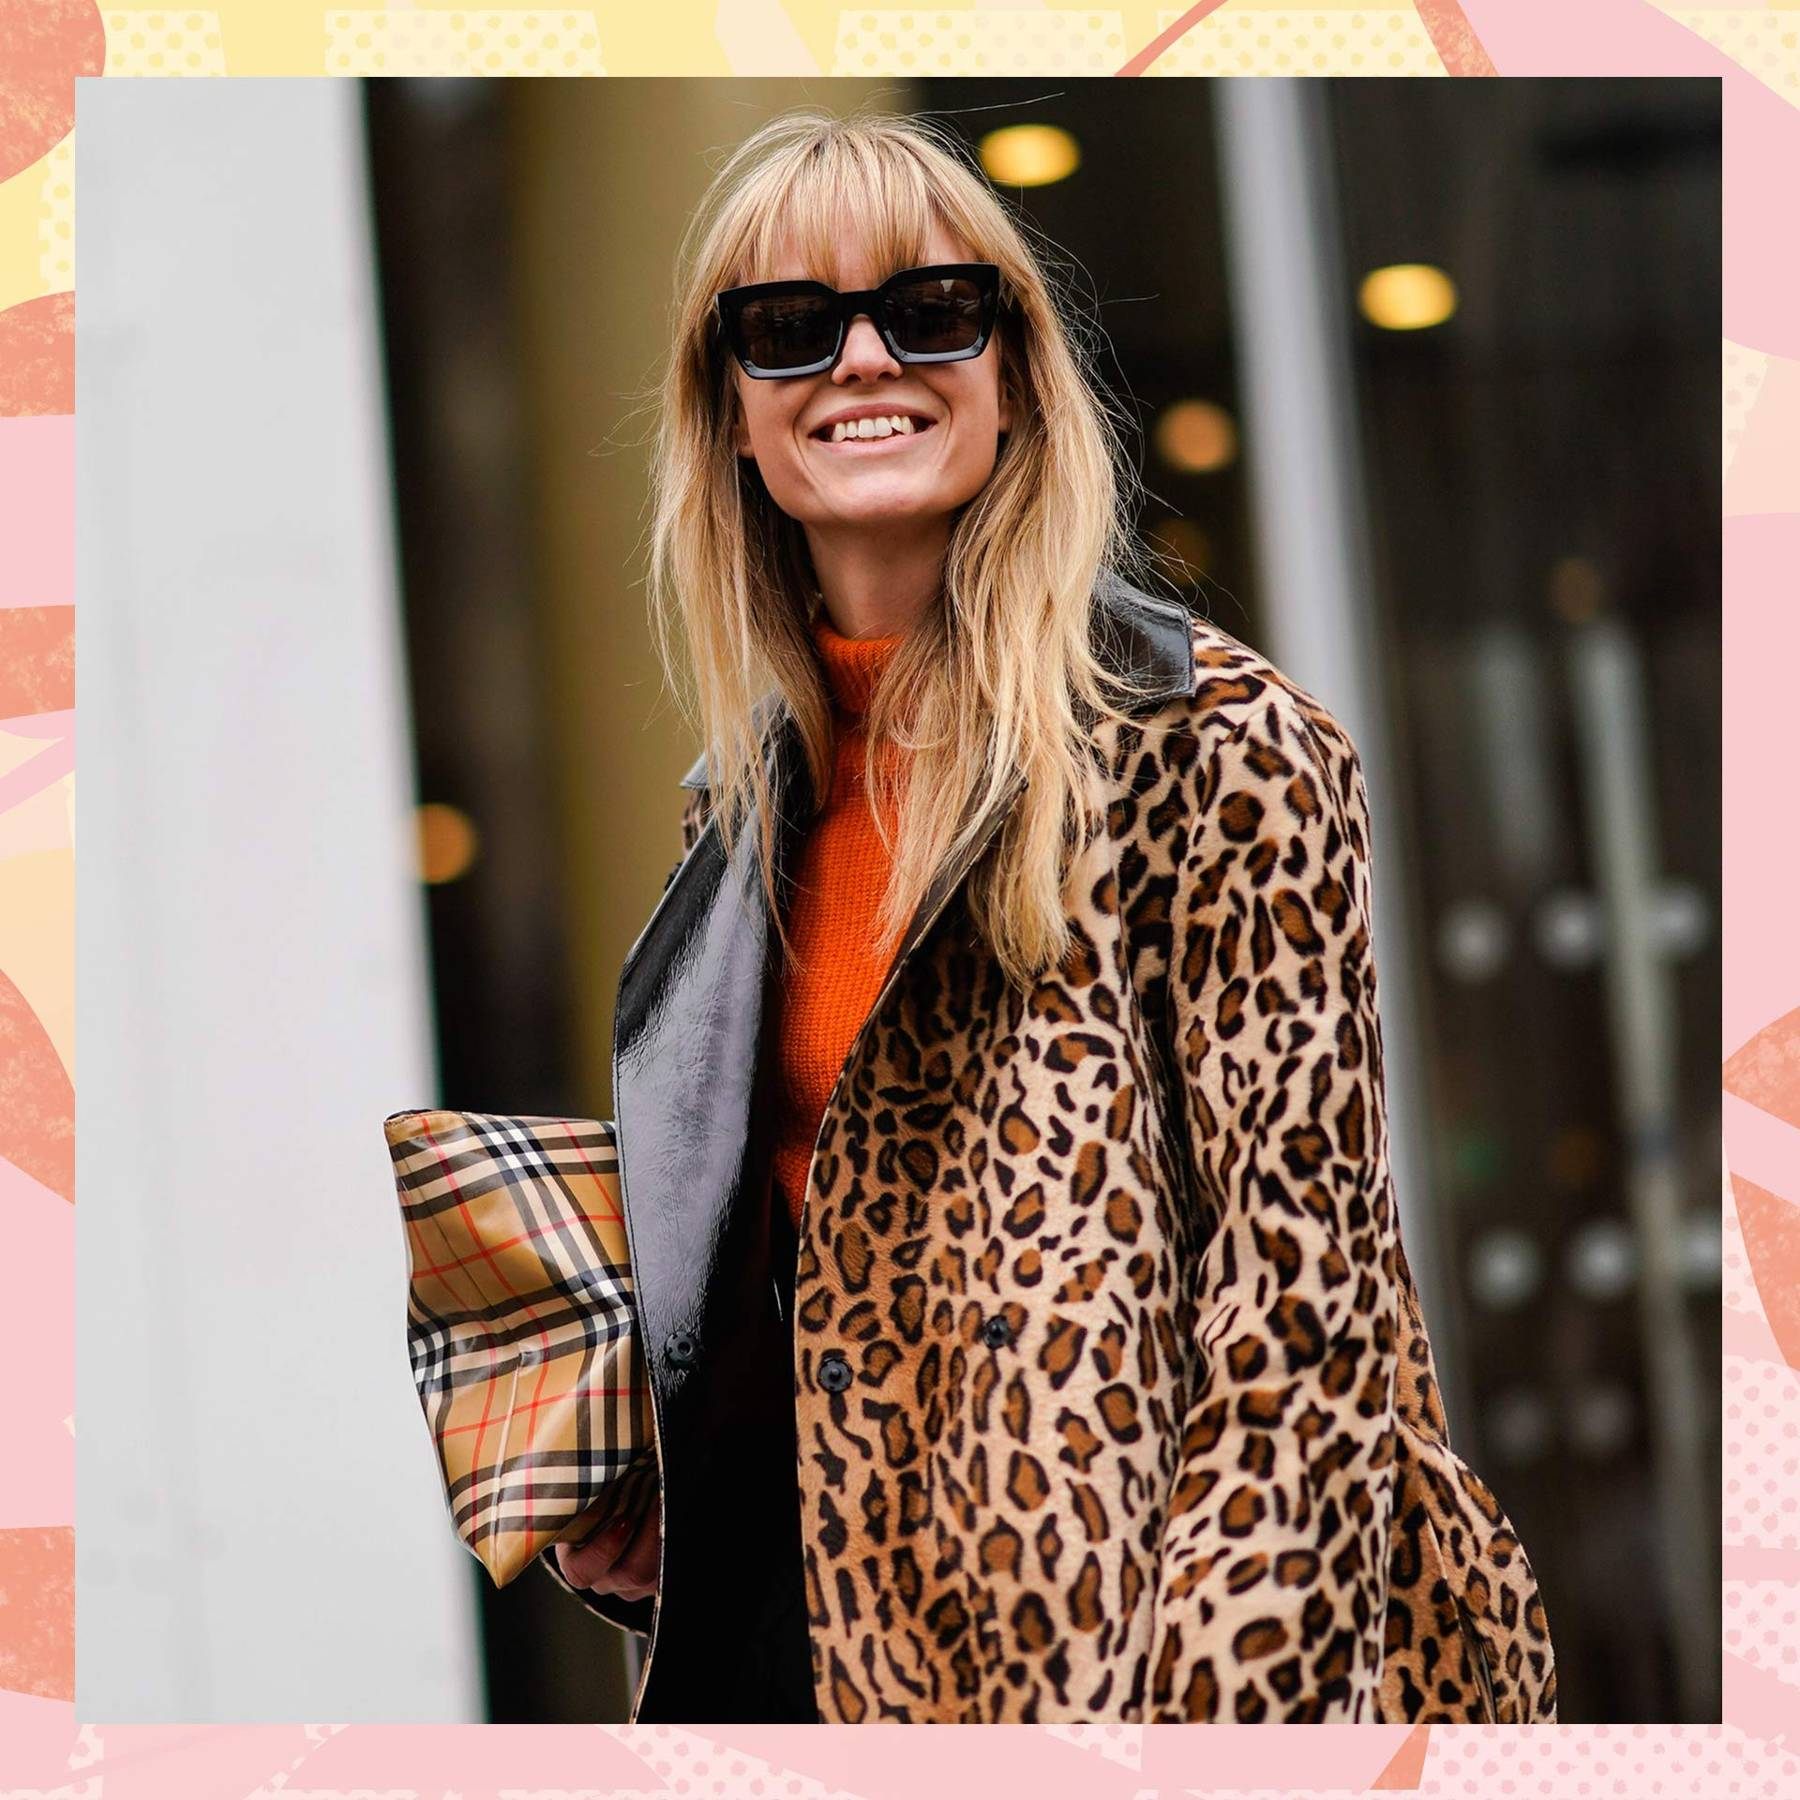 67a91087354d How to Wear Leopard Print and Avoid the Kat Slater Look | Glamour UK